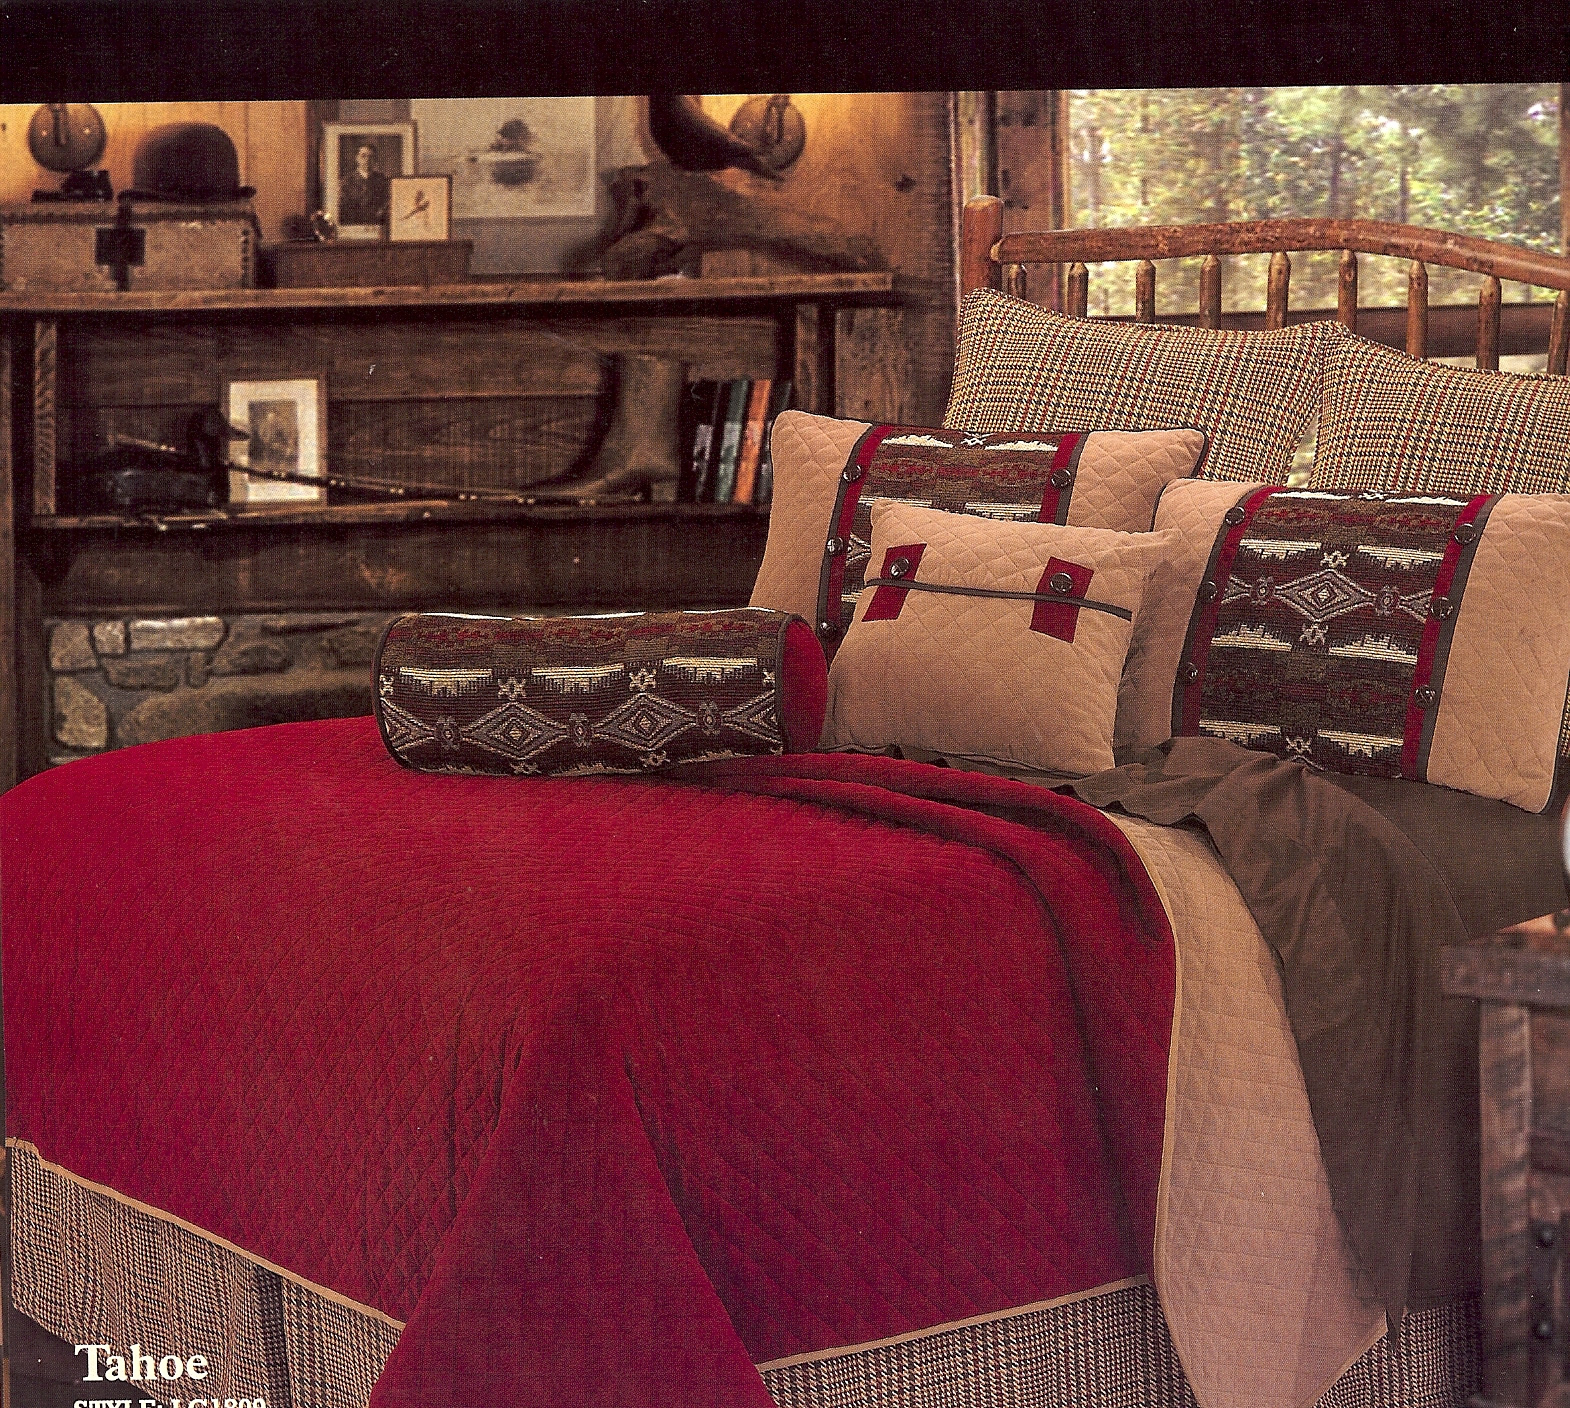 sale leaves black comforters piece queen red themed spot lodge bear cabins cabin set quilt best and bedding amazon white blue full sets top hunting